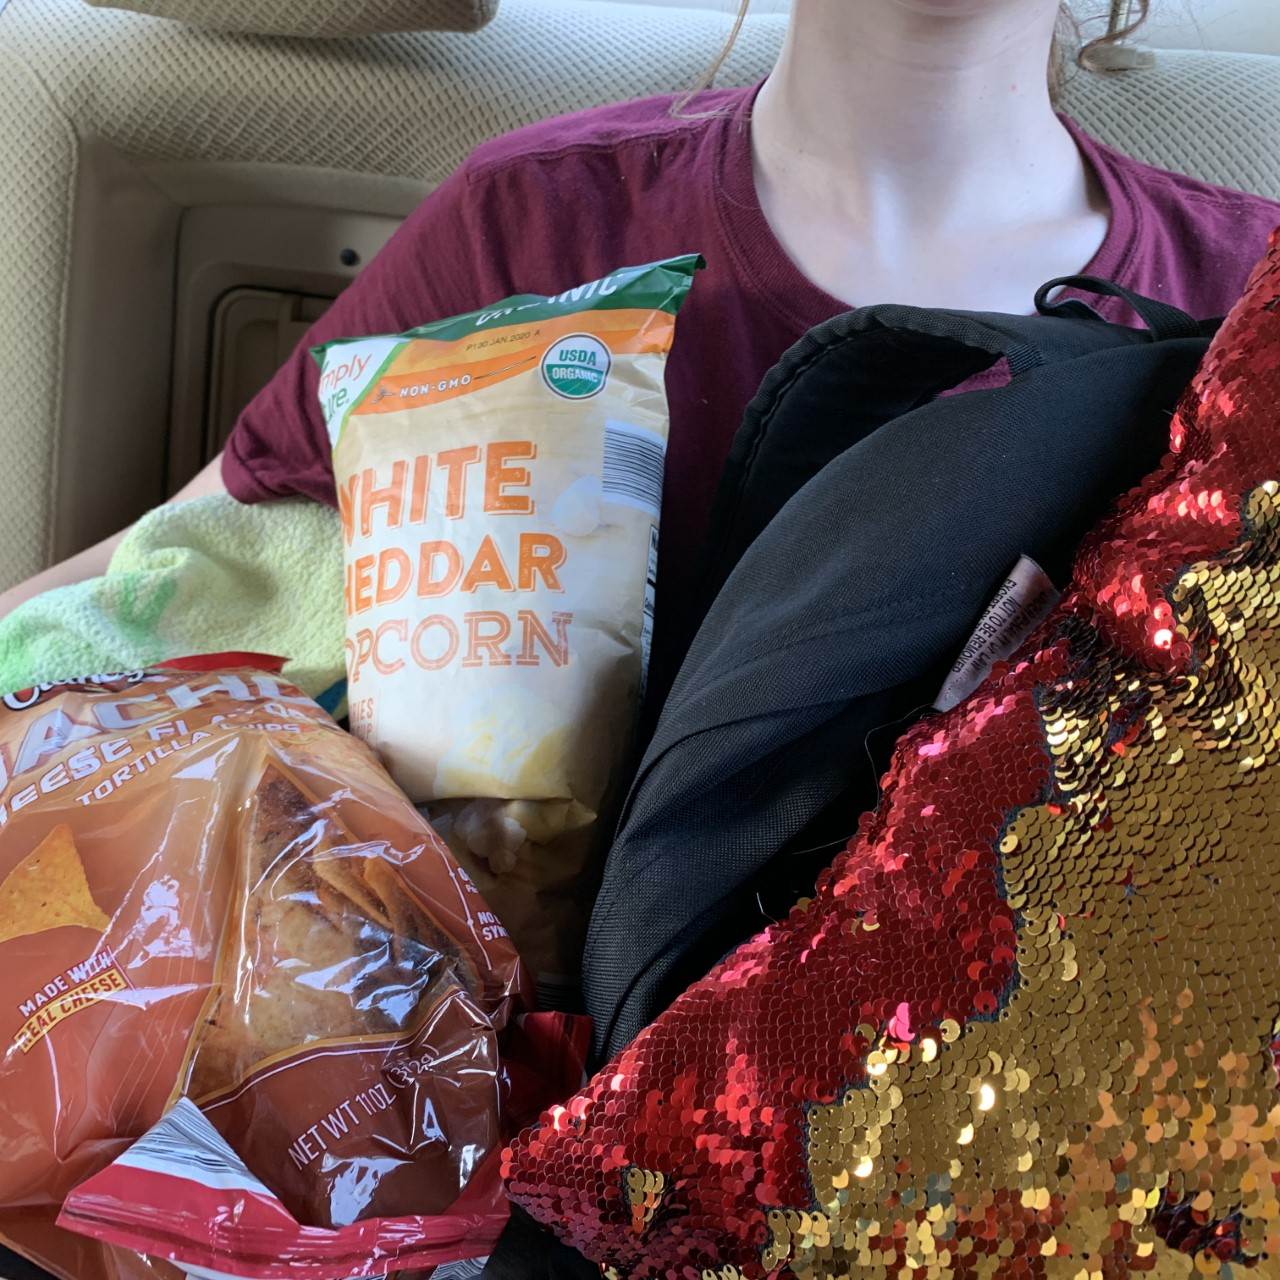 Pillows, backpacks, snacks, and blankets are some of the items that can crowd personal space during a long car trip. With no space, it can be hard to fall asleep.